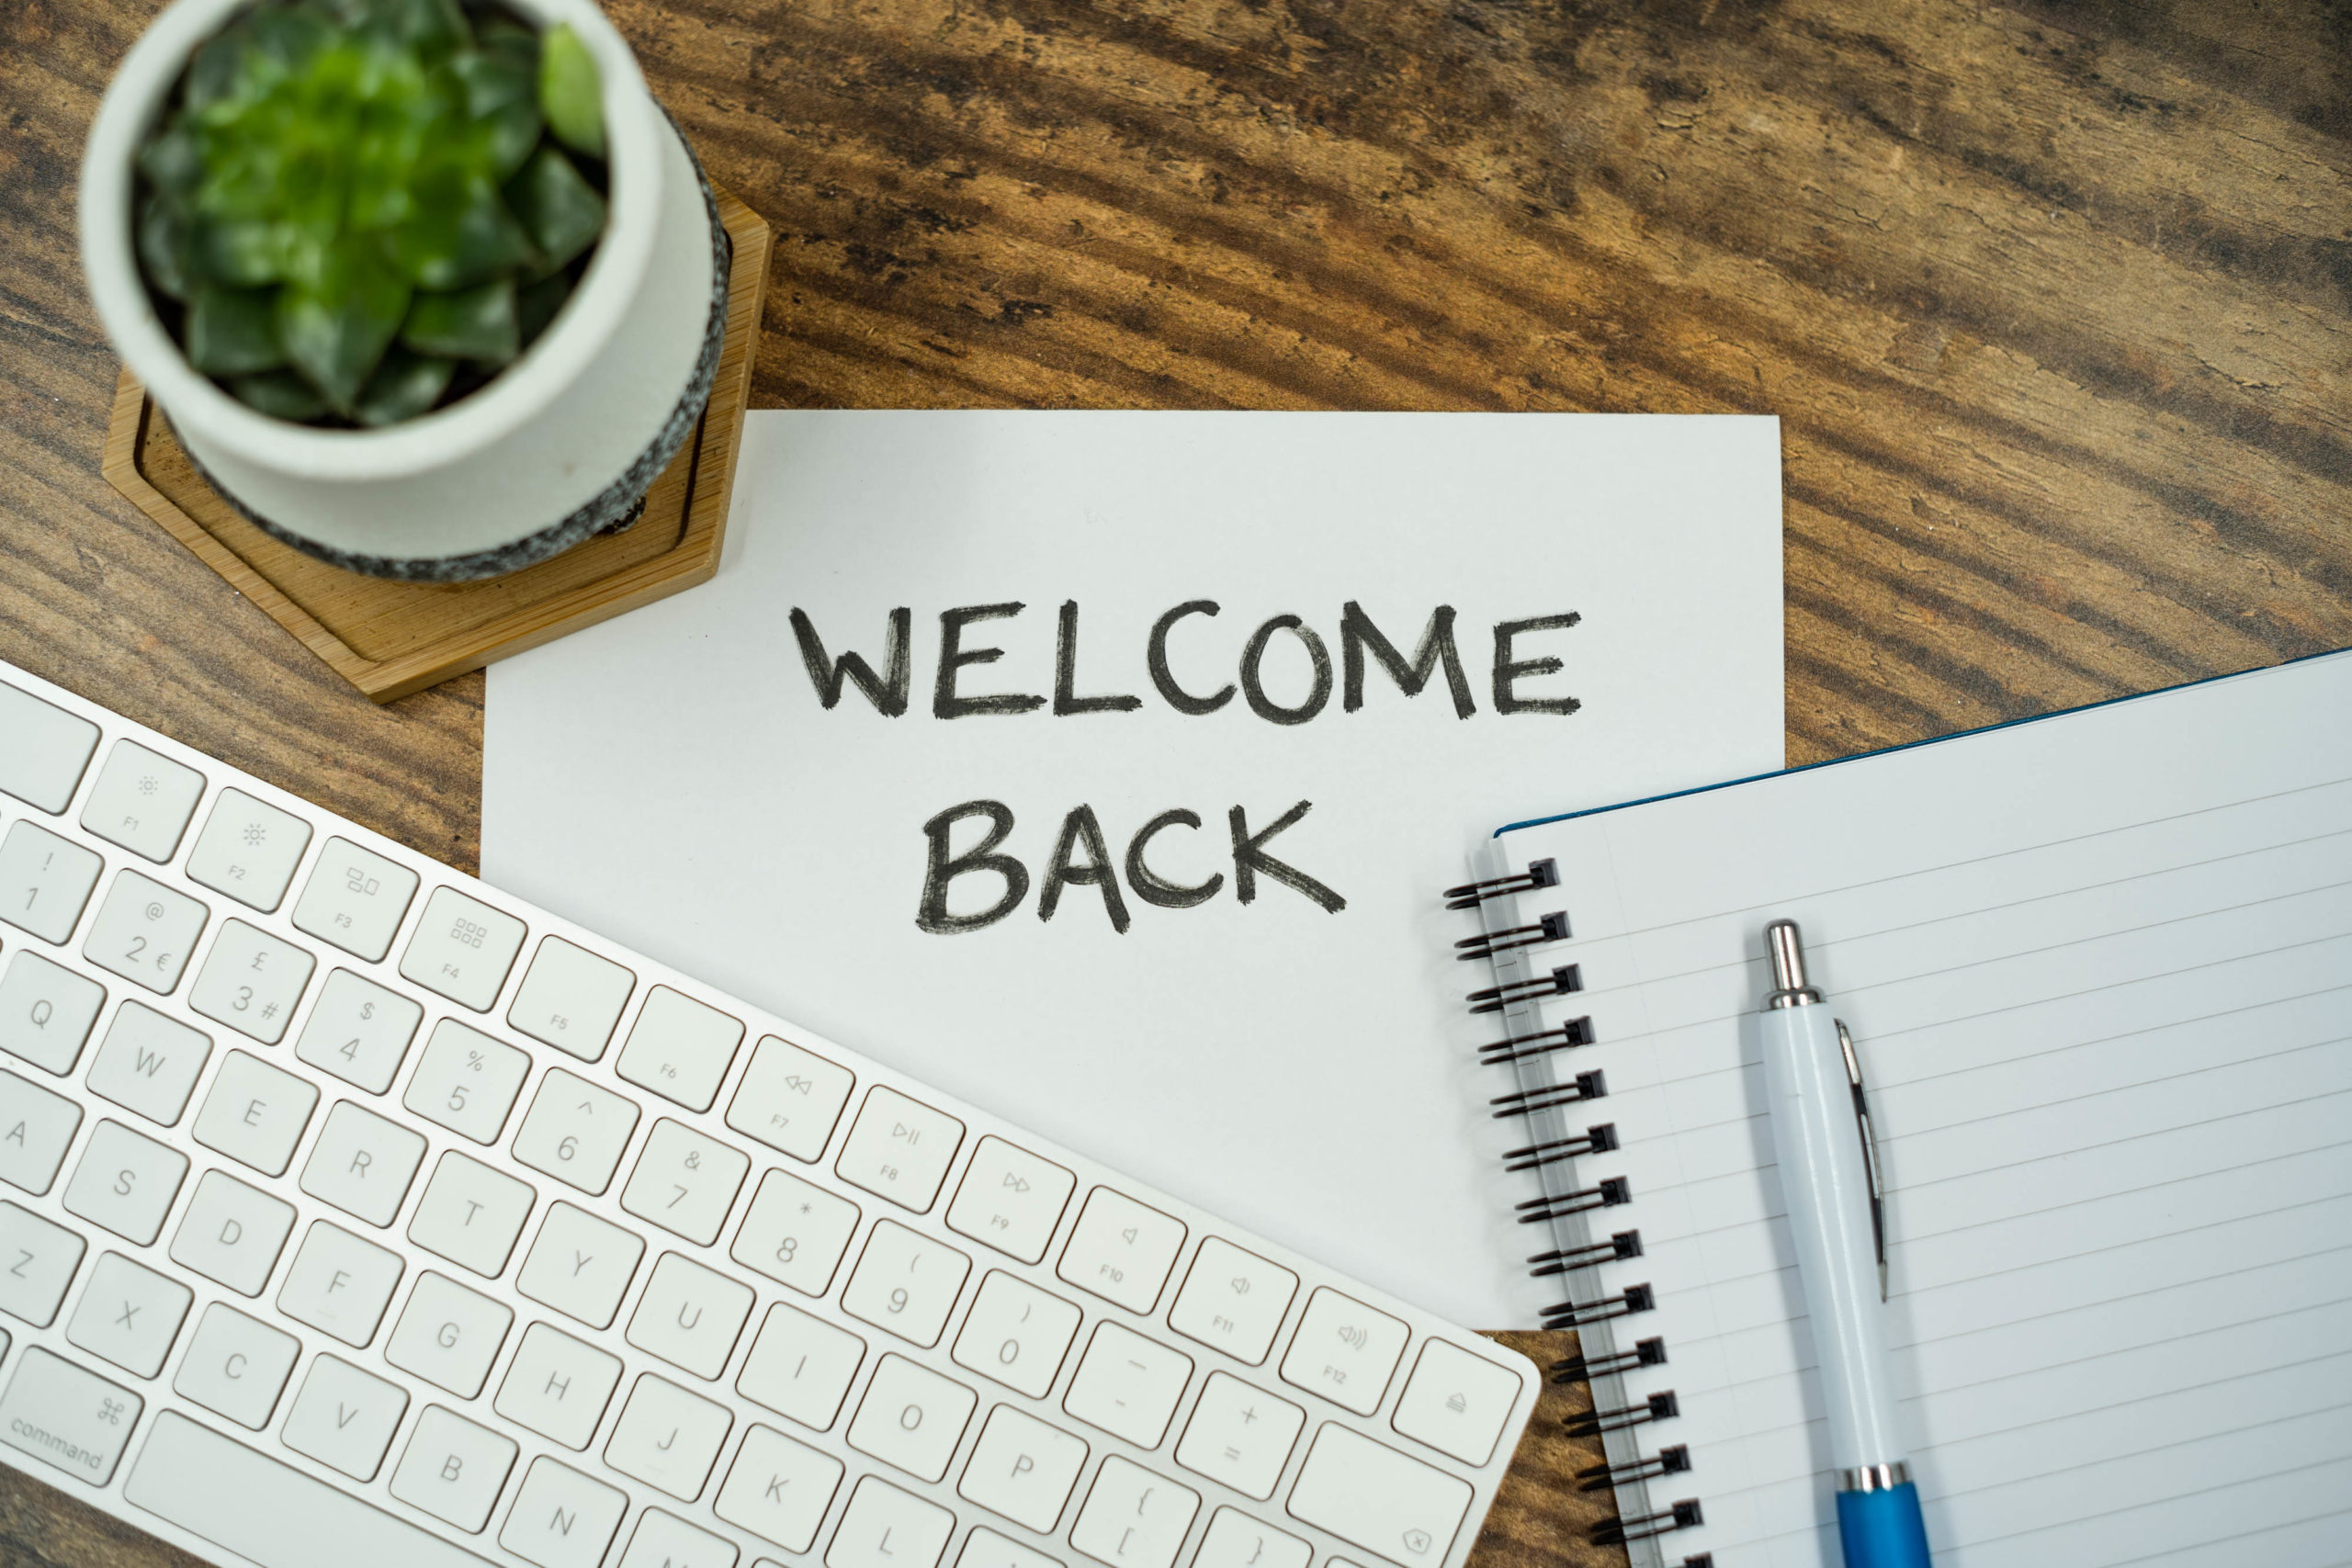 Welcome Back at Work, lakeland-furniture, CC BY 2.0